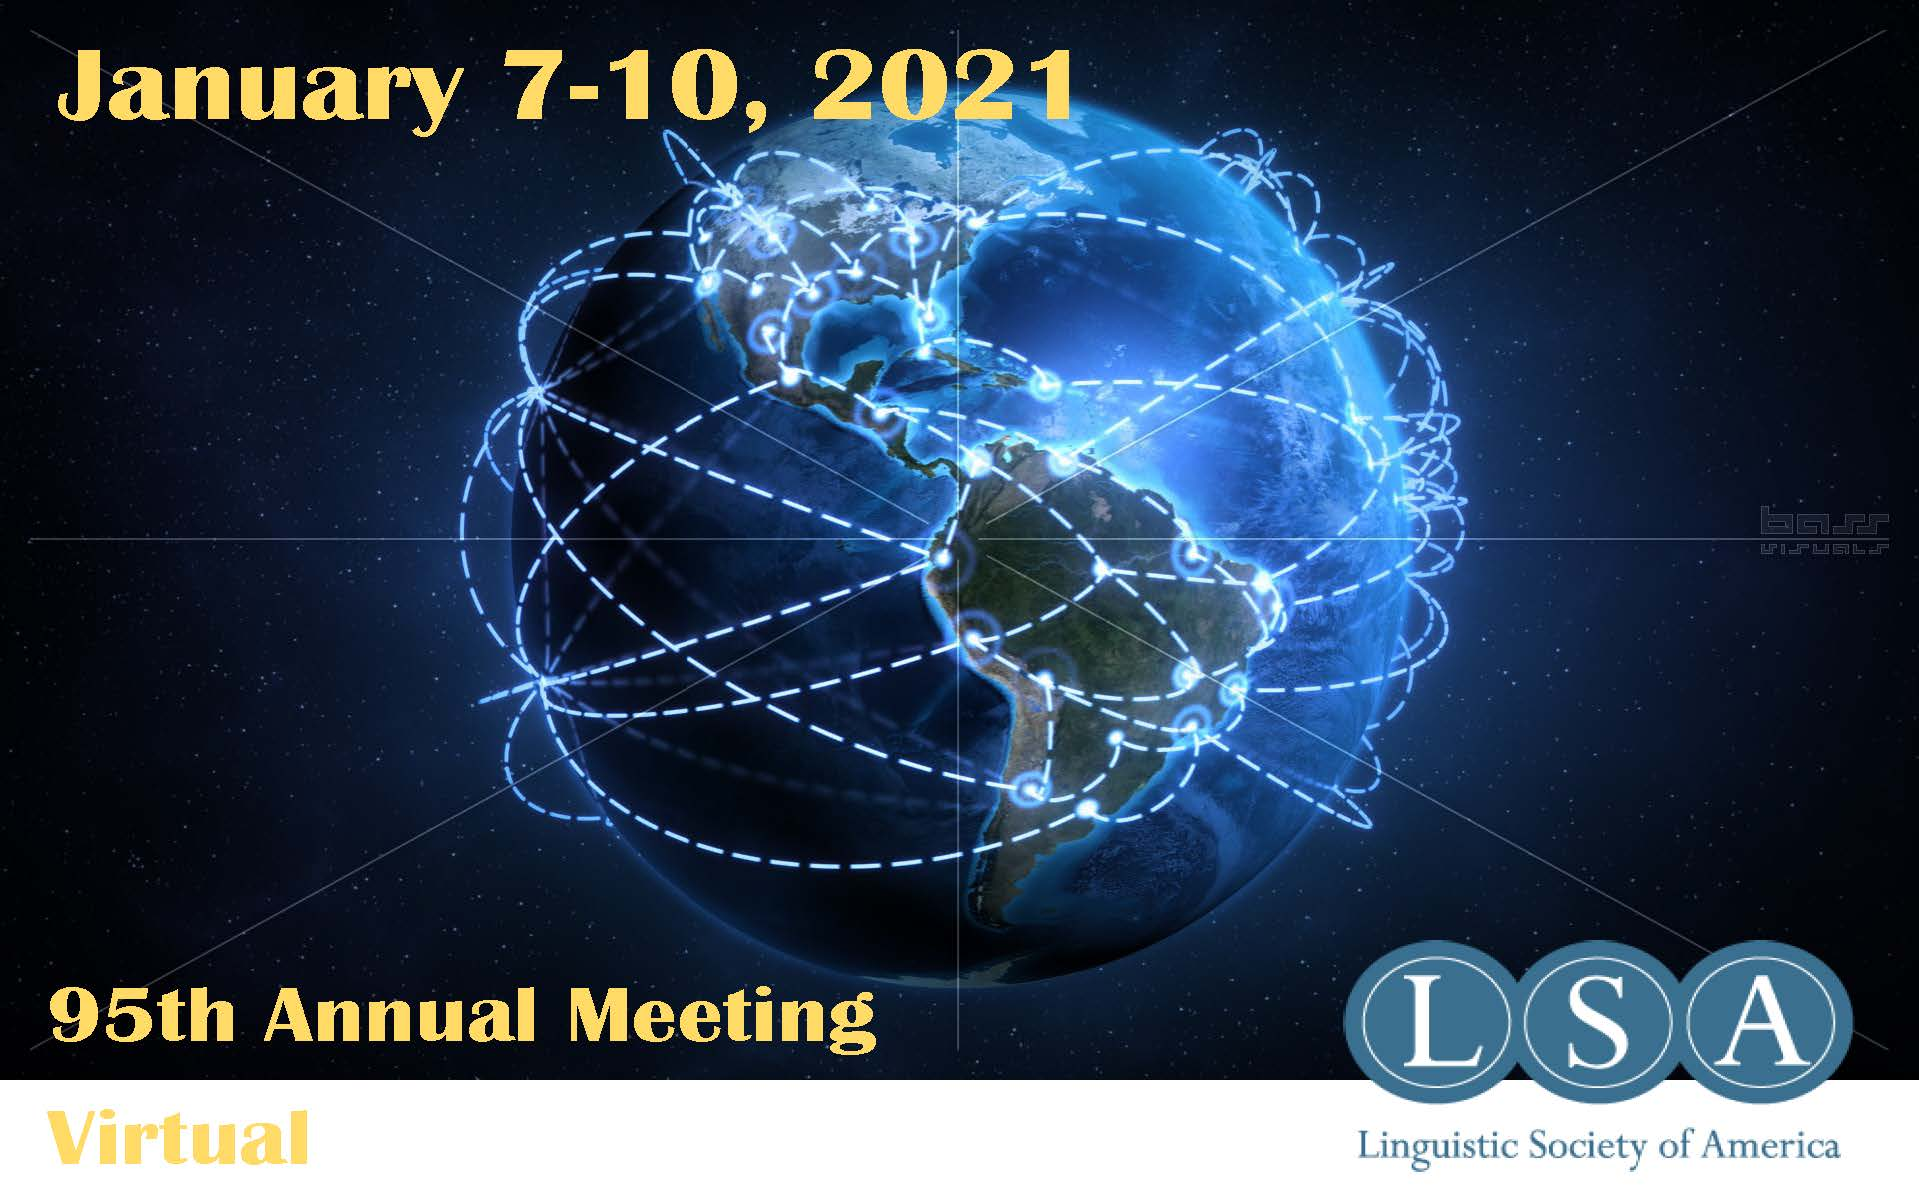 Make plans to attend the LSA Annual Meeting, Jan 7-10, 2020